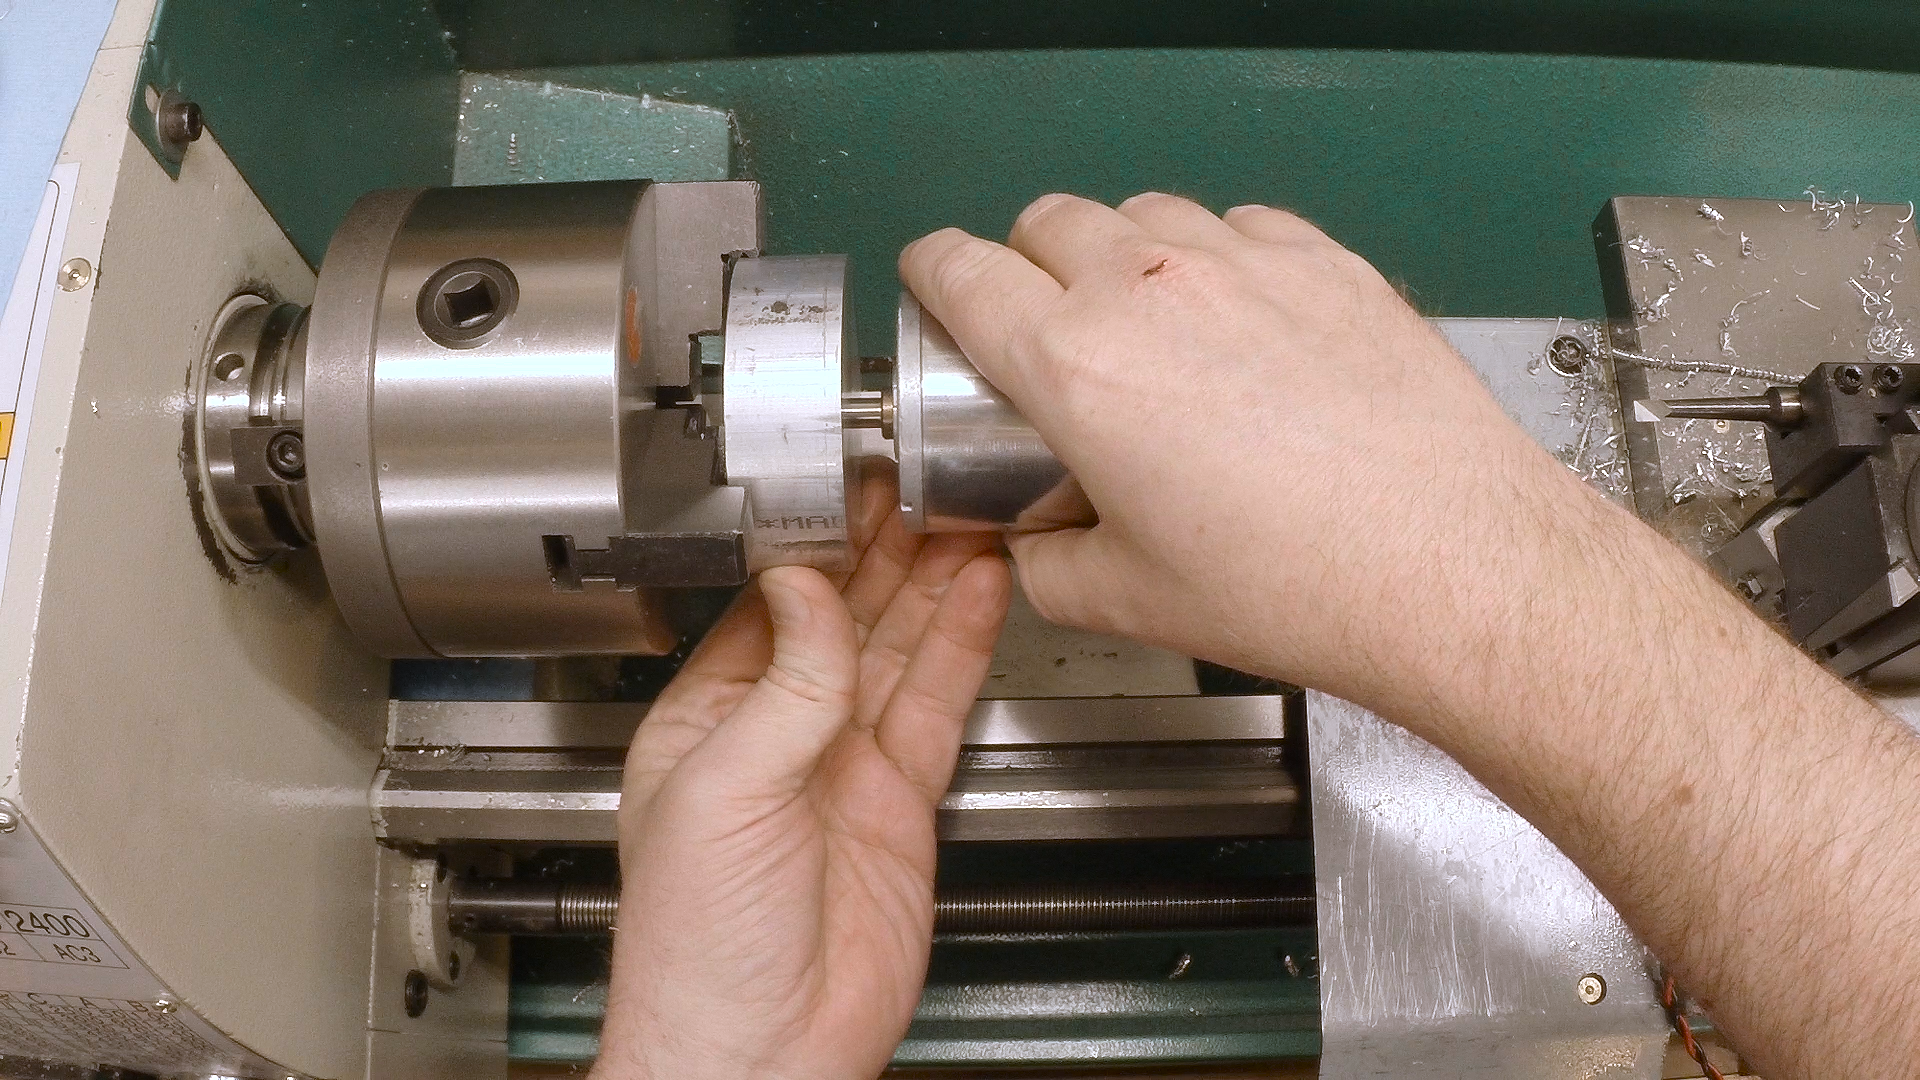 tool post grinder. boring testing the fit tool post grinder